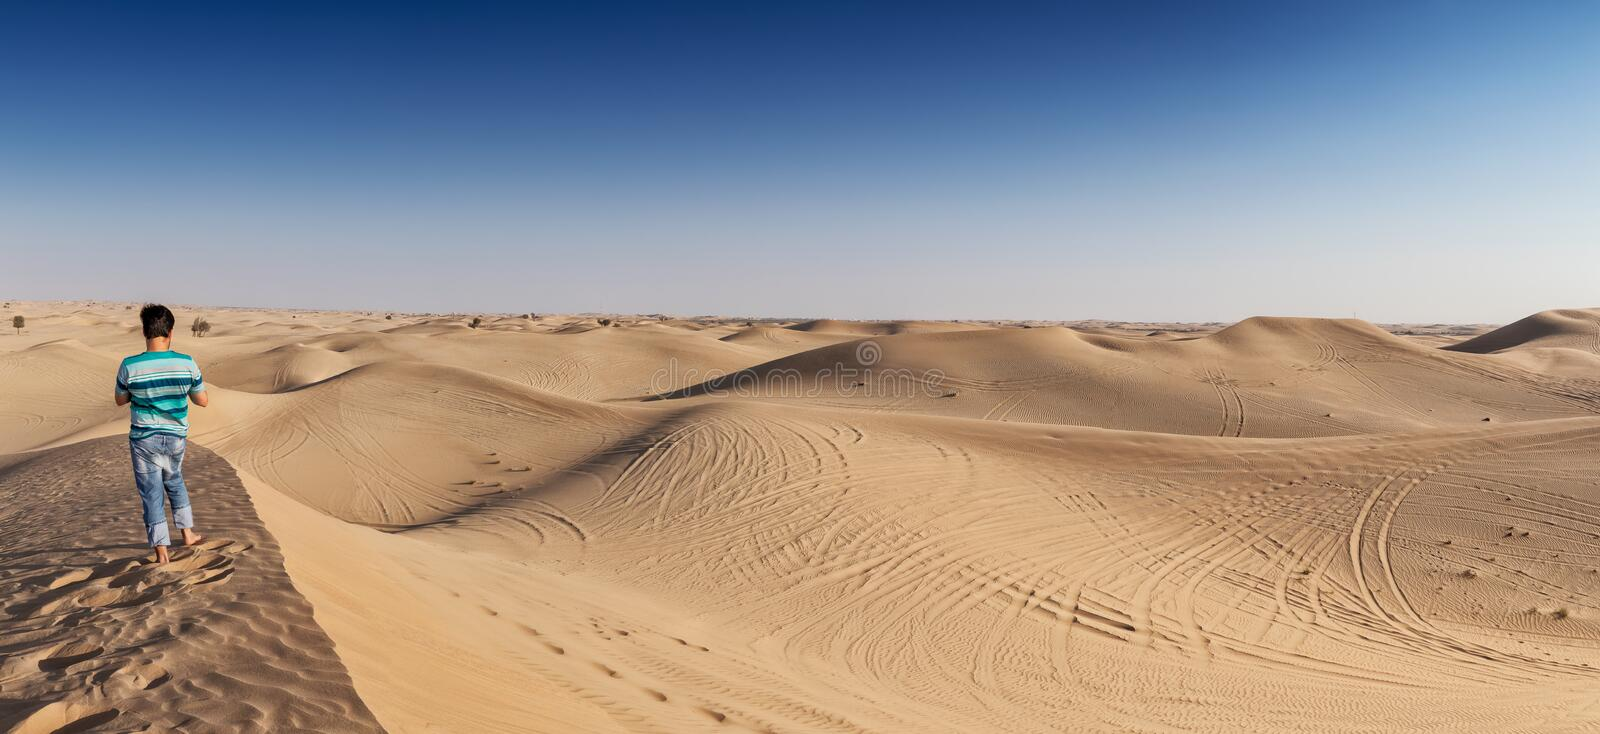 Panoramic photograph of a man on top of a dune in the Abu Dhabi desert. UAE. Uae stock image